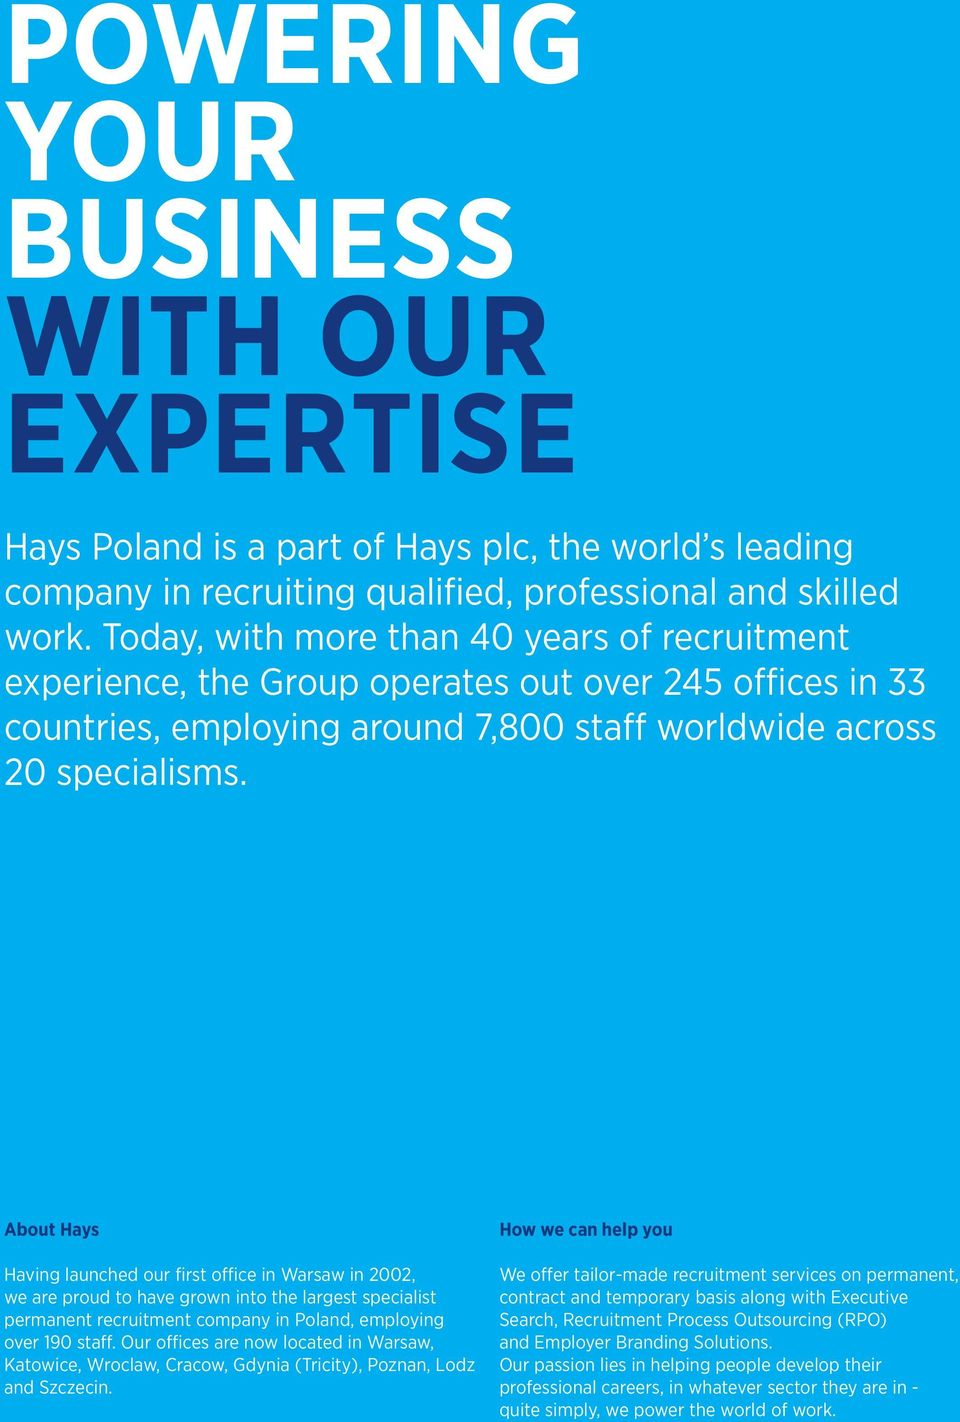 About Hays Having launched our first office in Warsaw in 2002, we are proud to have grown into the largest specialist permanent recruitment company in Poland, employing over 190 staff.